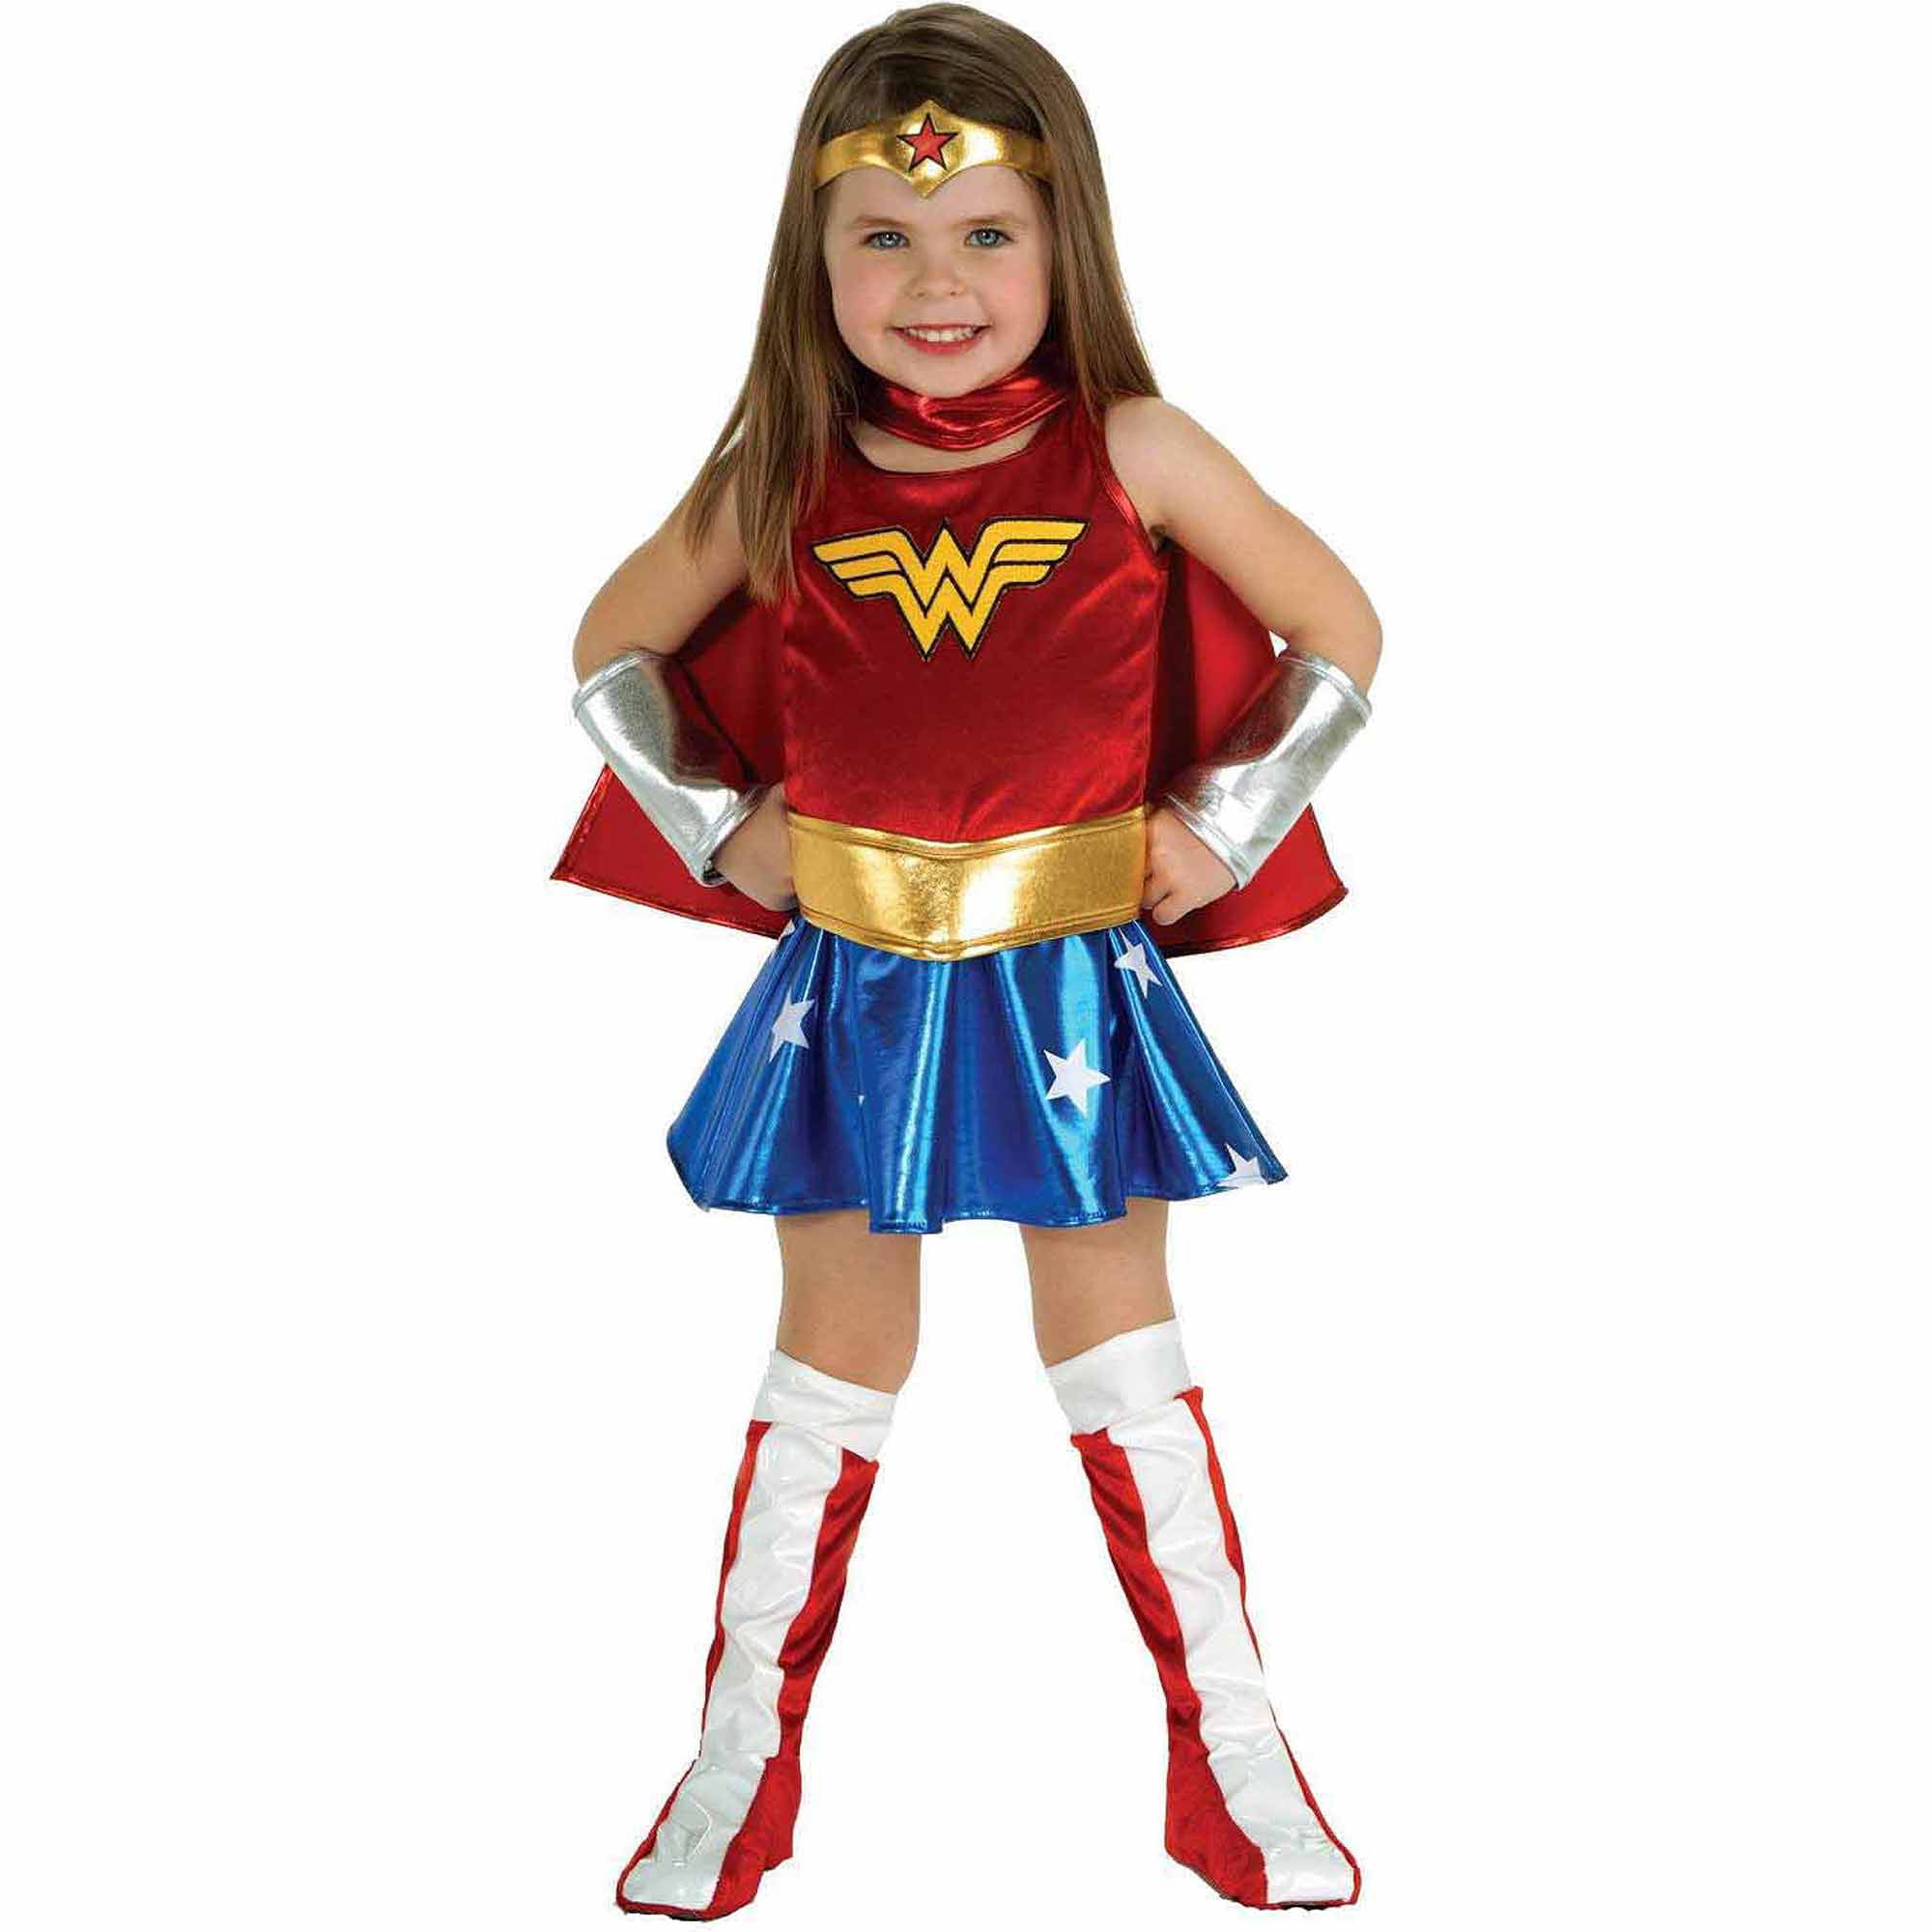 Baby & Toddler Halloween Costumes - Walmart.com